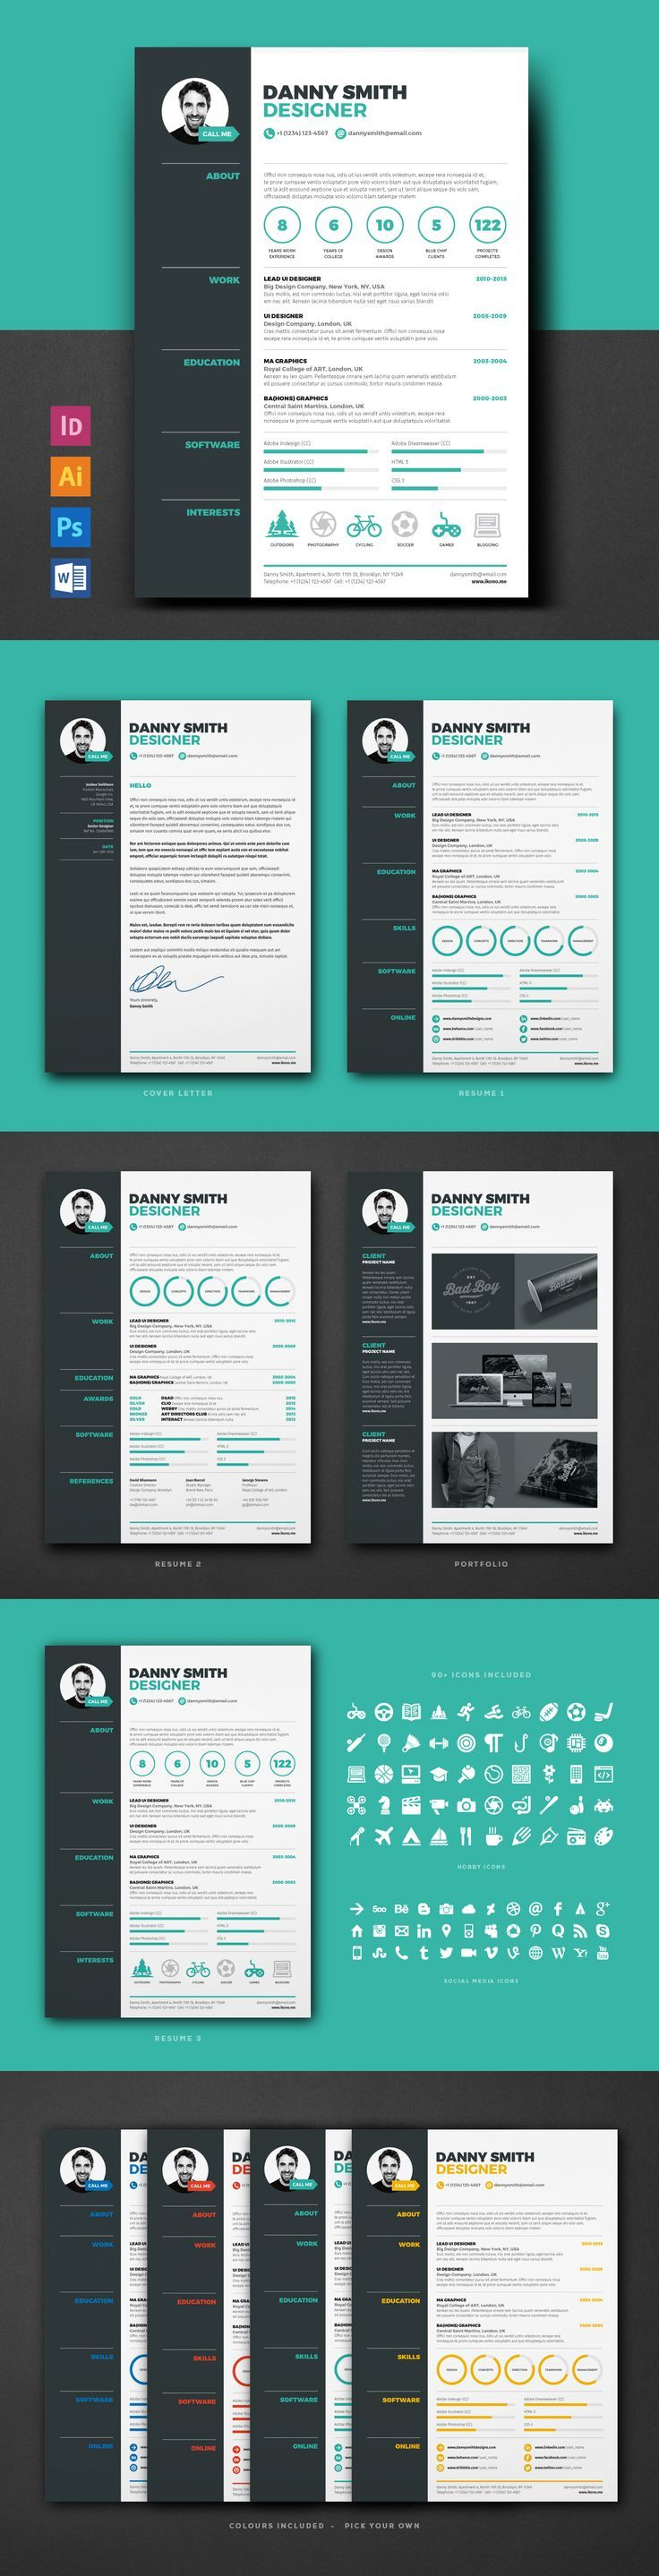 best ideas about creative cv template creative professional creative resume template for ms word modern resume design cv template design instant digital anna